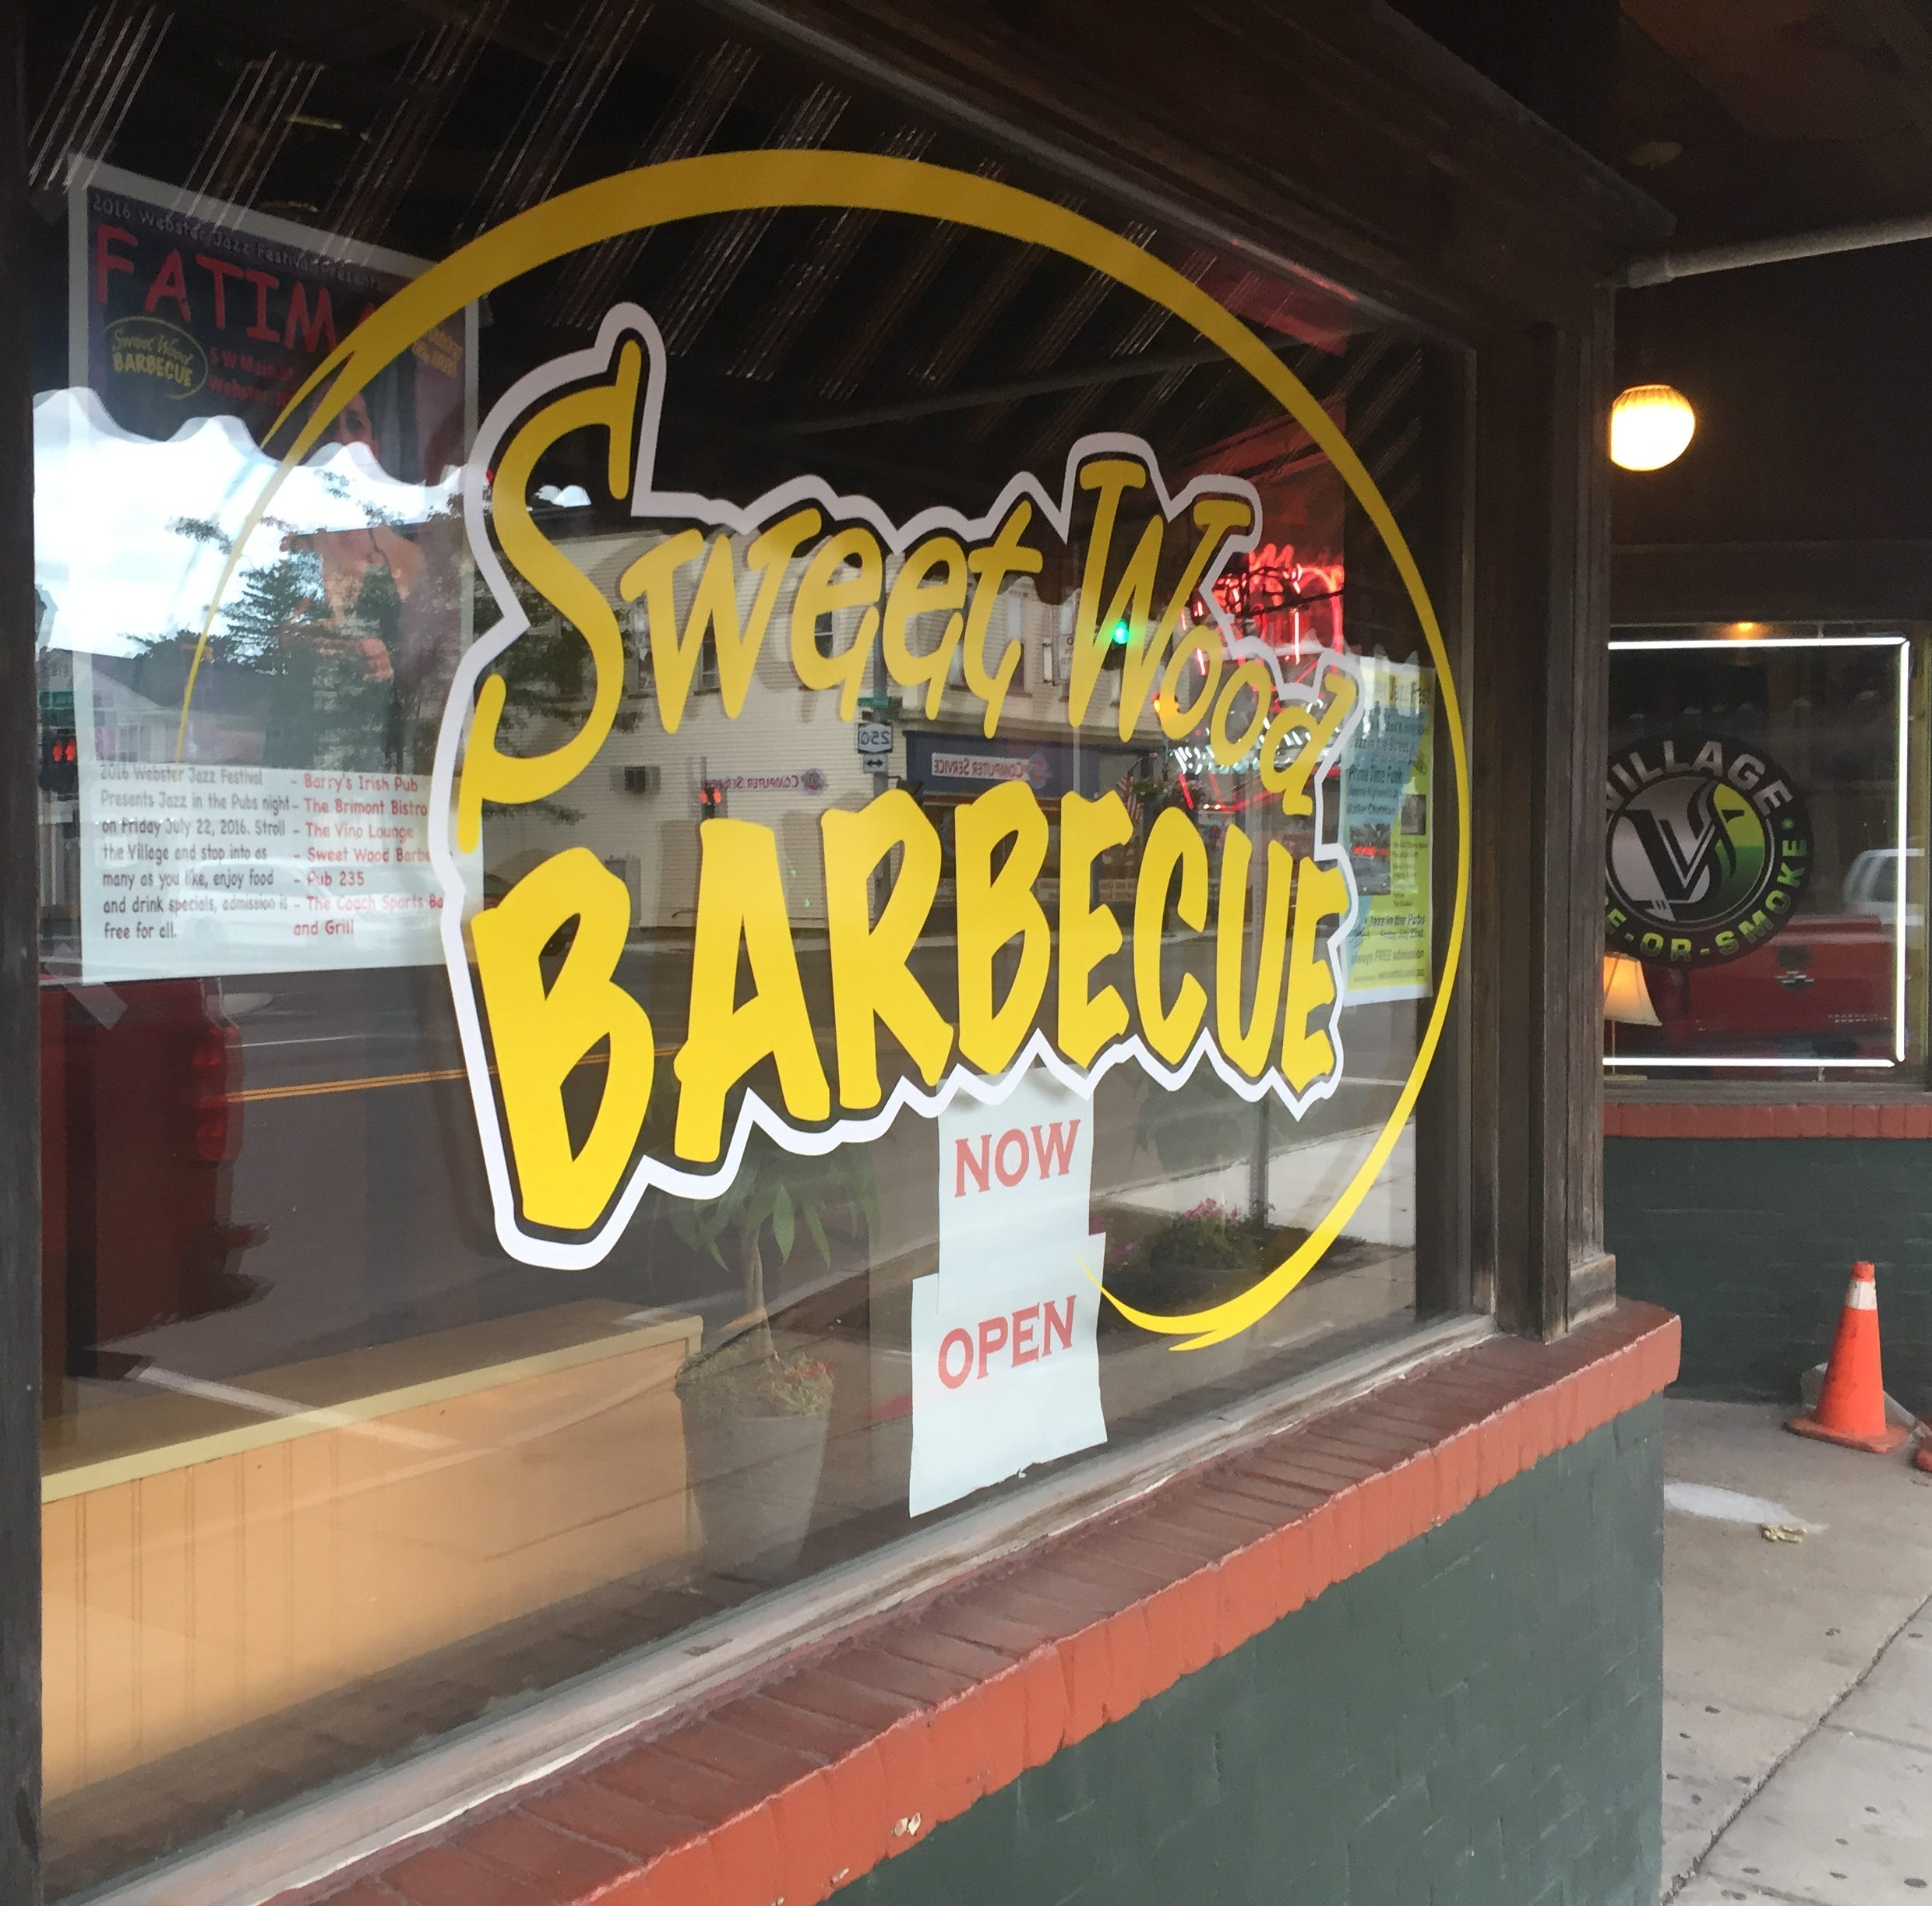 Sweet Wood Barbecue to close in Webster